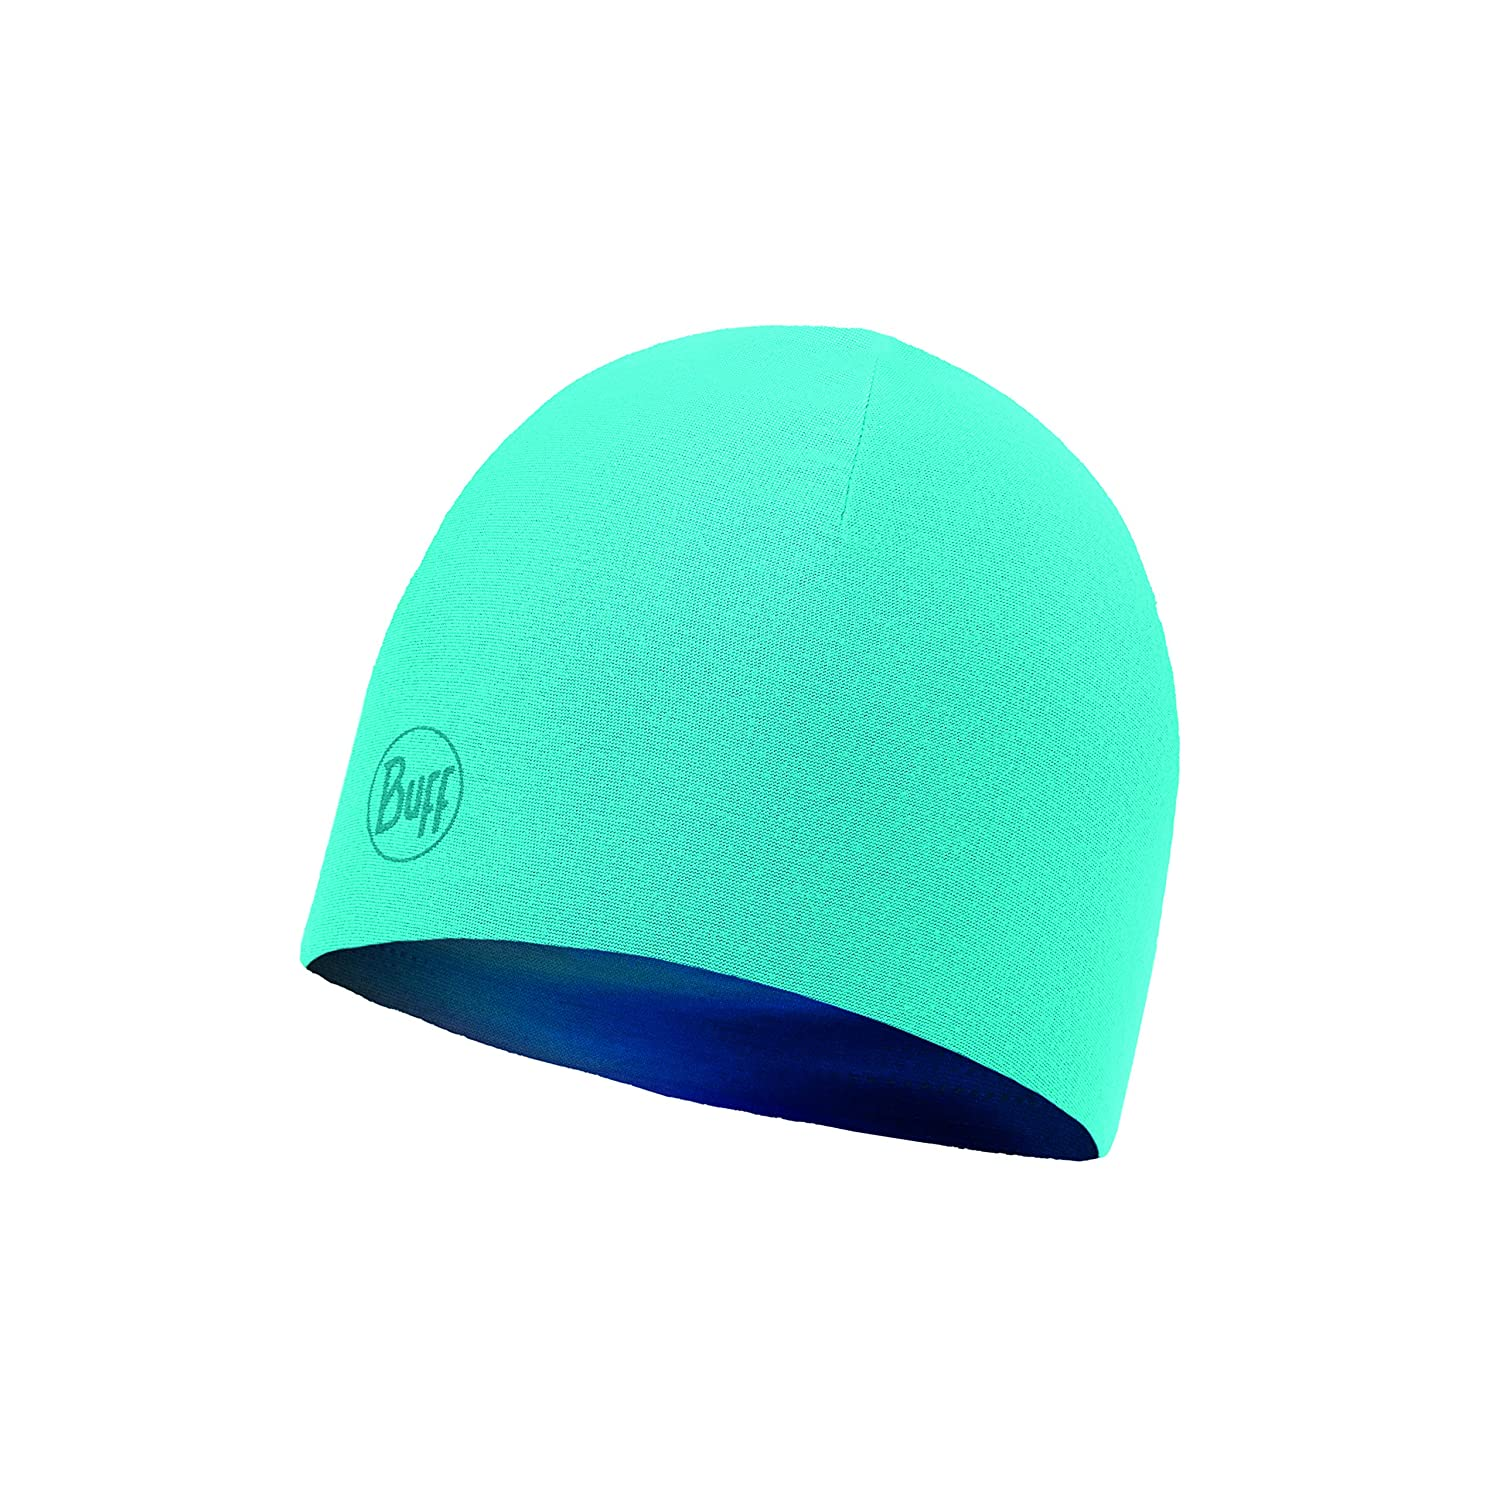 Buff RLuminance Multi Scuba Blue Microfiber Reversible Cappello AW18